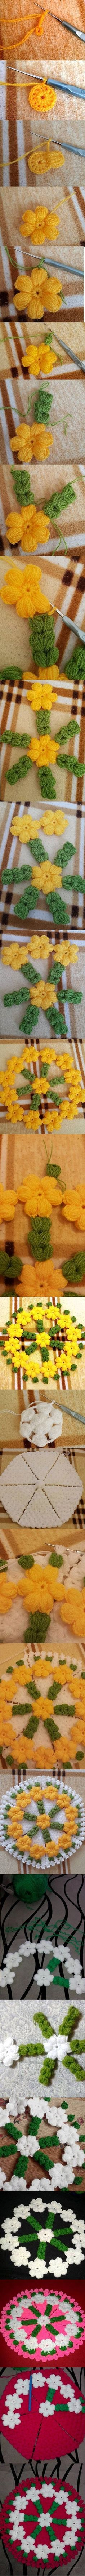 Crochet for Bathroom [] #<br/> # #Bathroom,<br/> # #Html,<br/> # #Flower<br/>